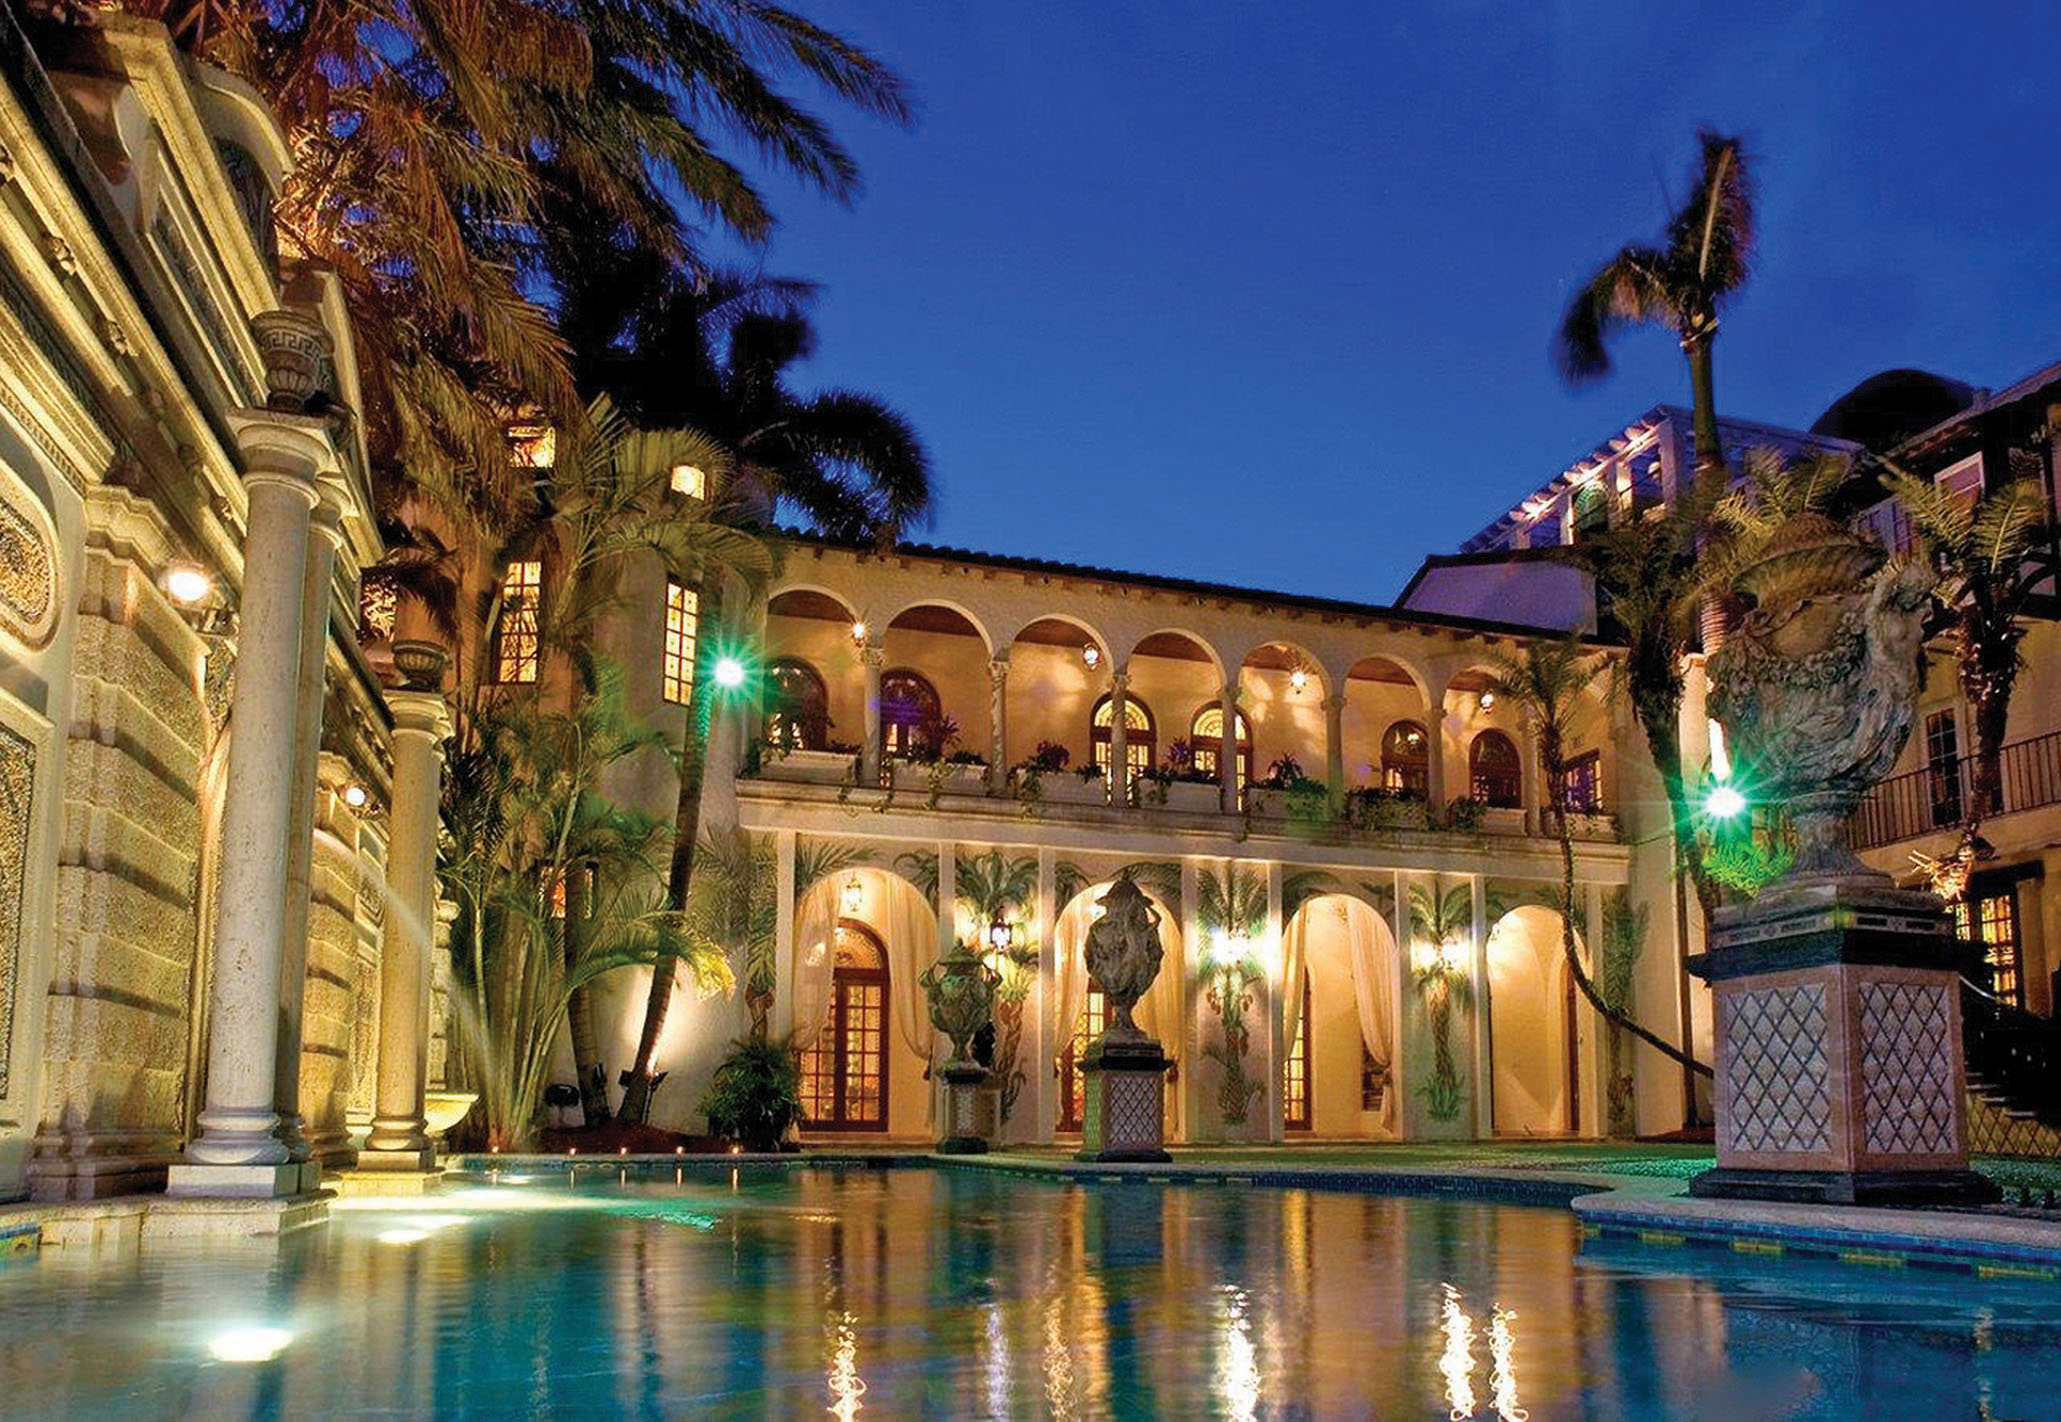 Stunning new images of the Gianni Versace mansion as the property is put up for auction